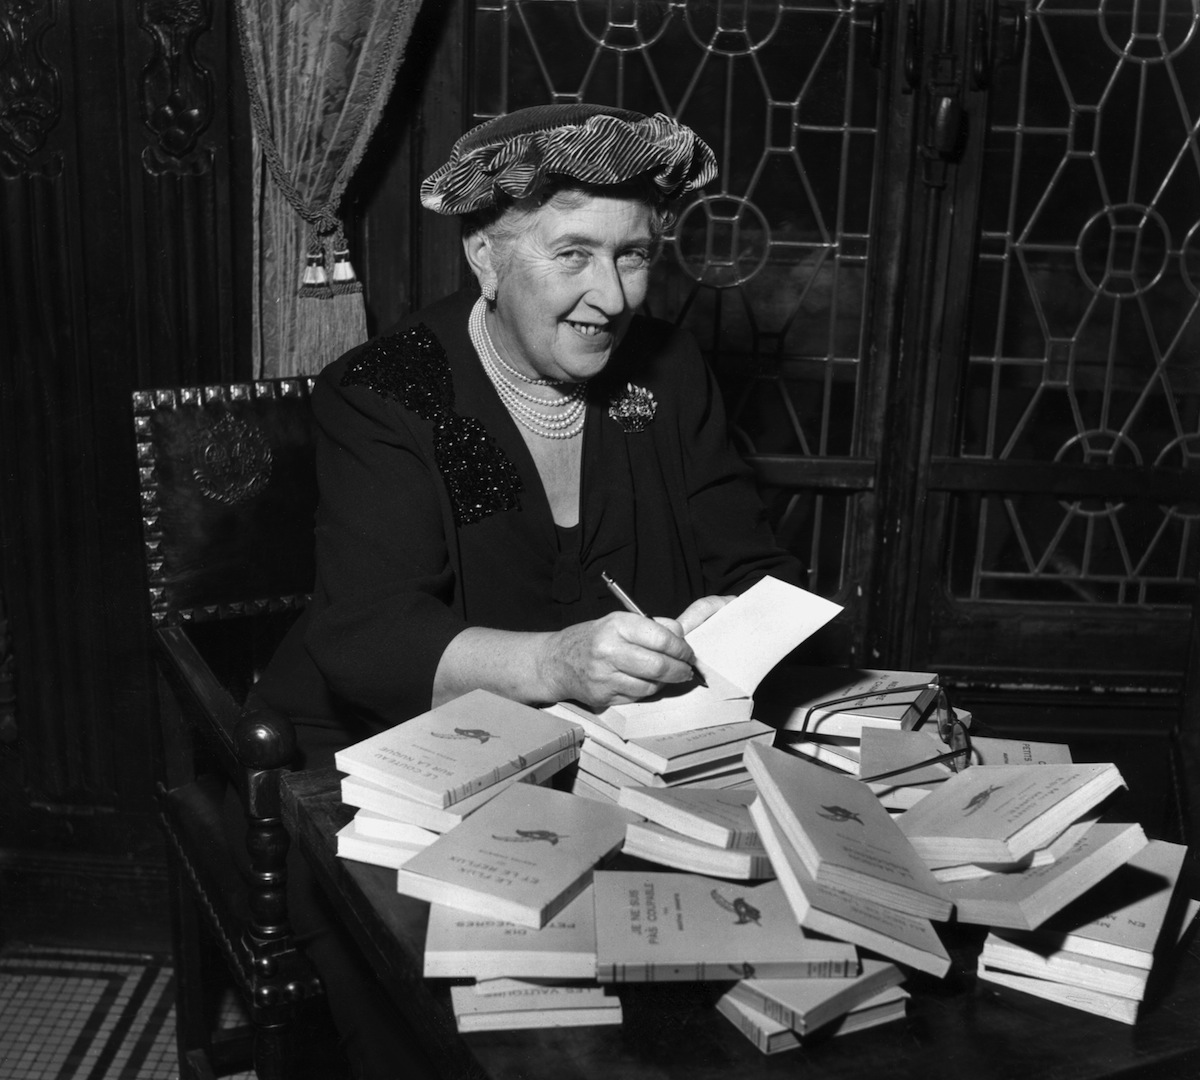 mystery author Agatha Christie (1890-1976) autographing French editions of her books in 1965